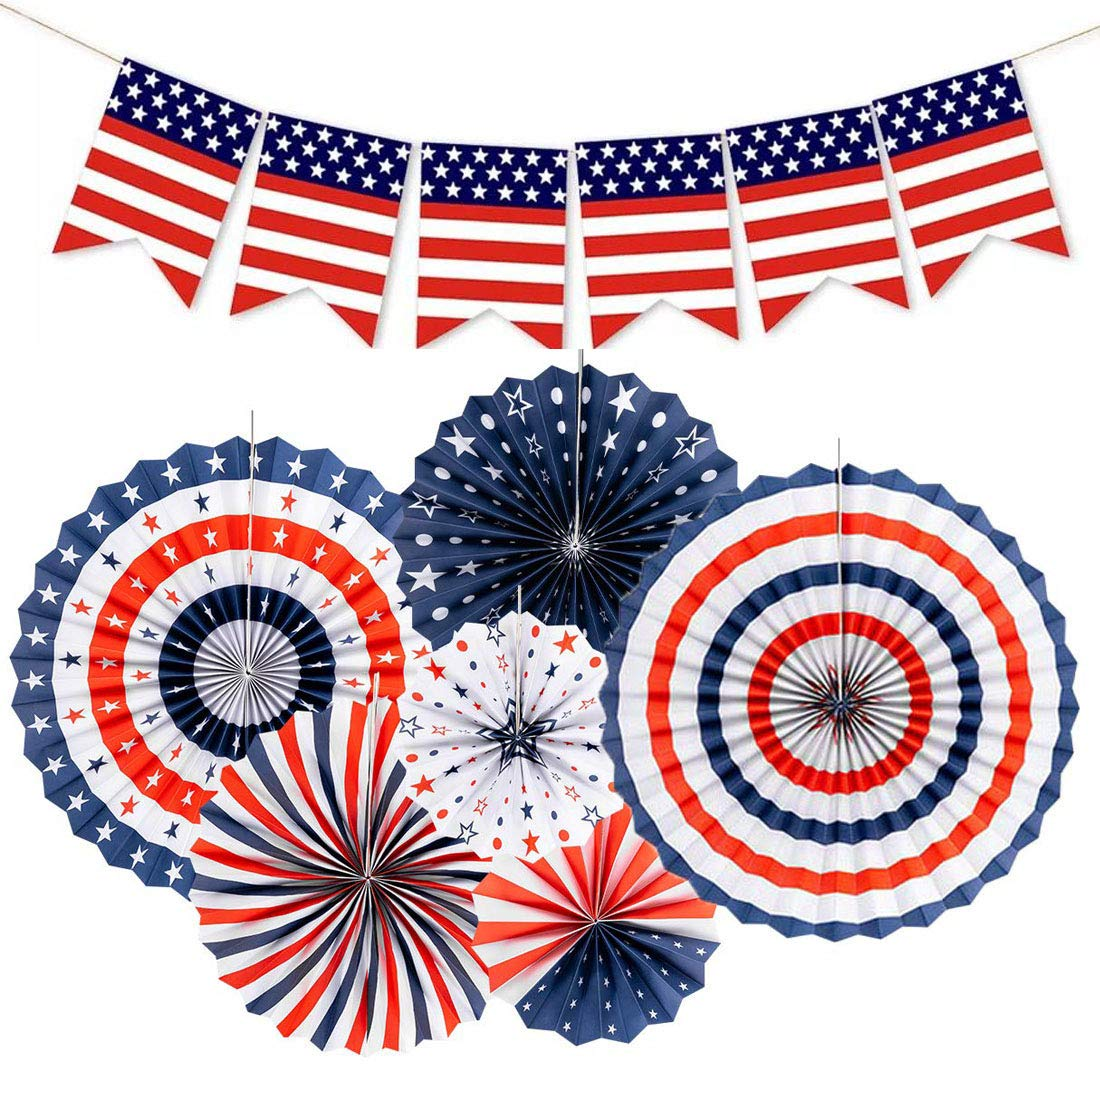 4th of July Patriotic Decorations American Flag Bunting Banner Red White Blue Hanging Paper Fans for Fourth of July Decor Independence Day Party Supplies